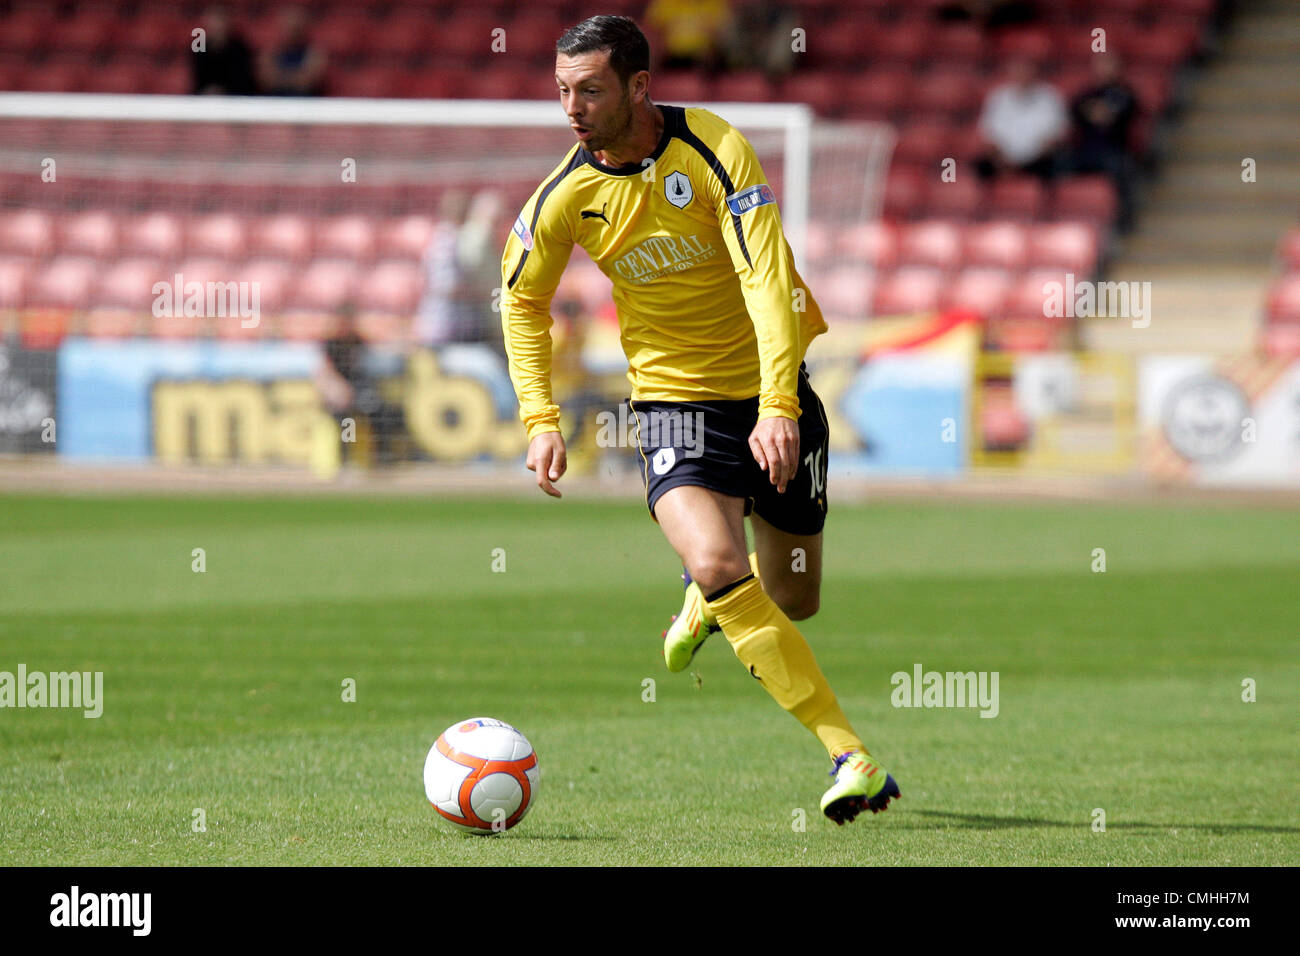 11th Aug 2012. 11.08.2012 Glasgow, Scotland.  10 Andy Hawarth in action during the Scottish Football League Division - Stock Image